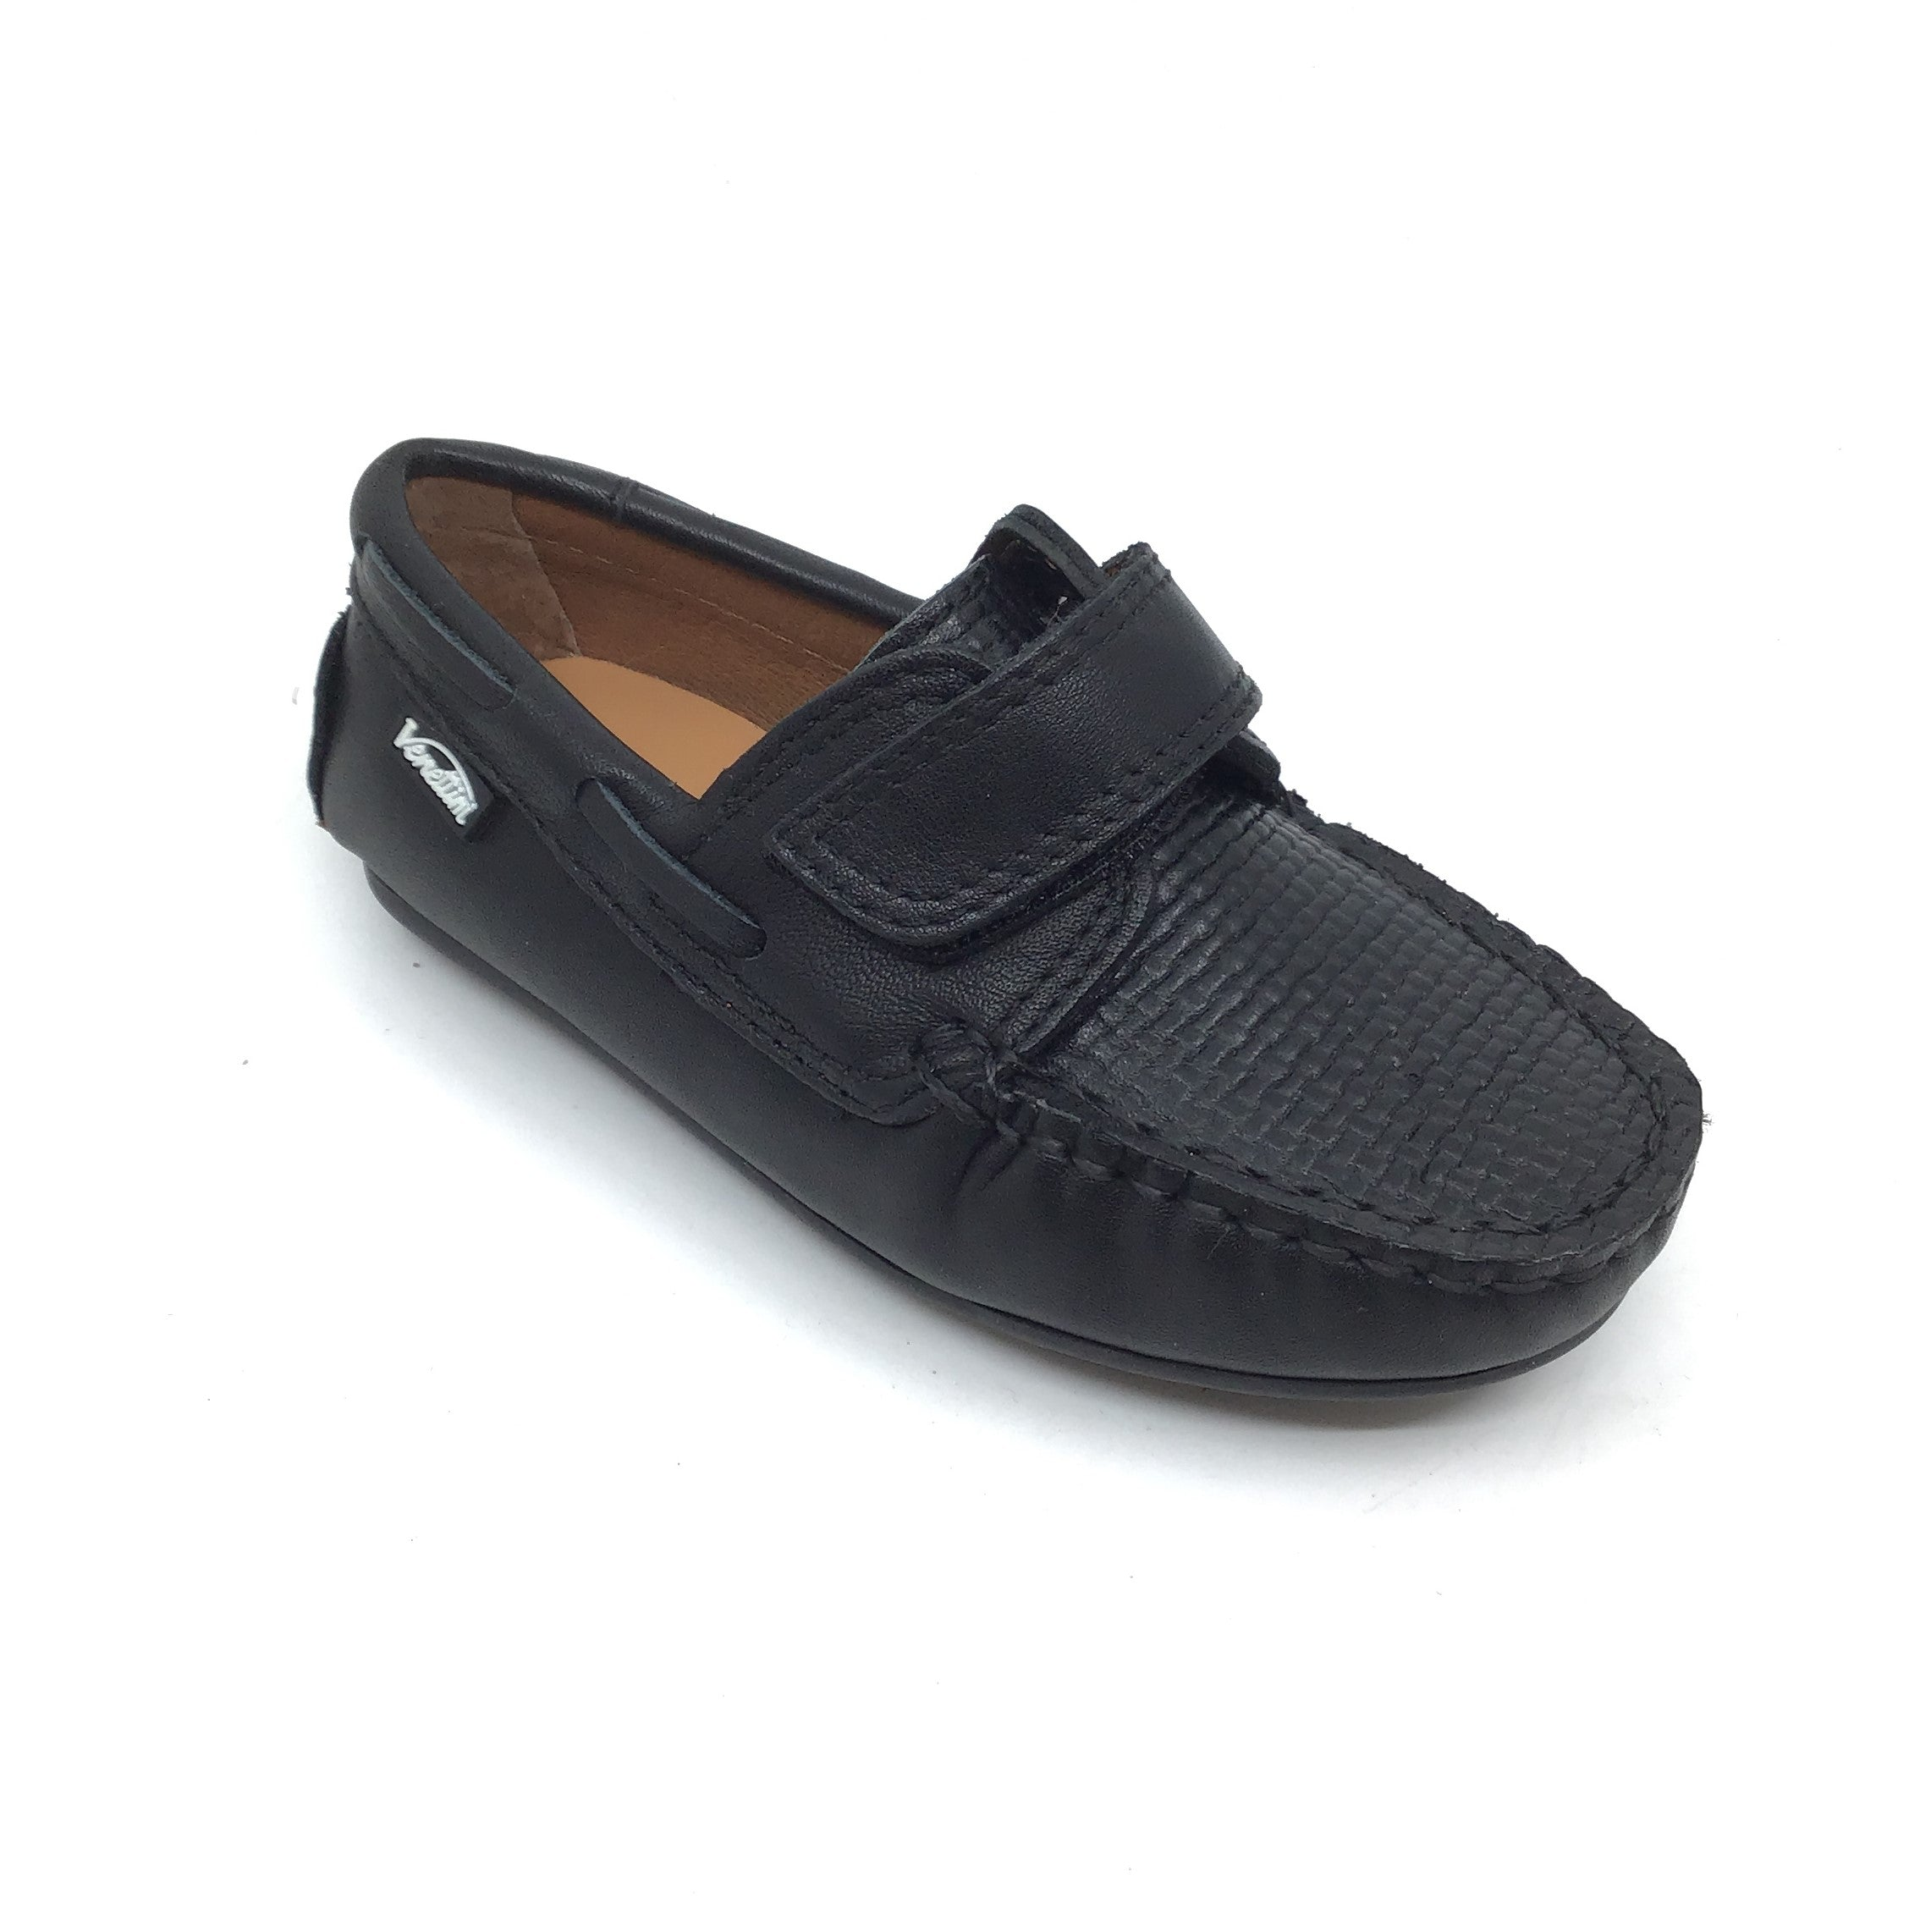 Venettini Black Velcro Loafer with Front Texture